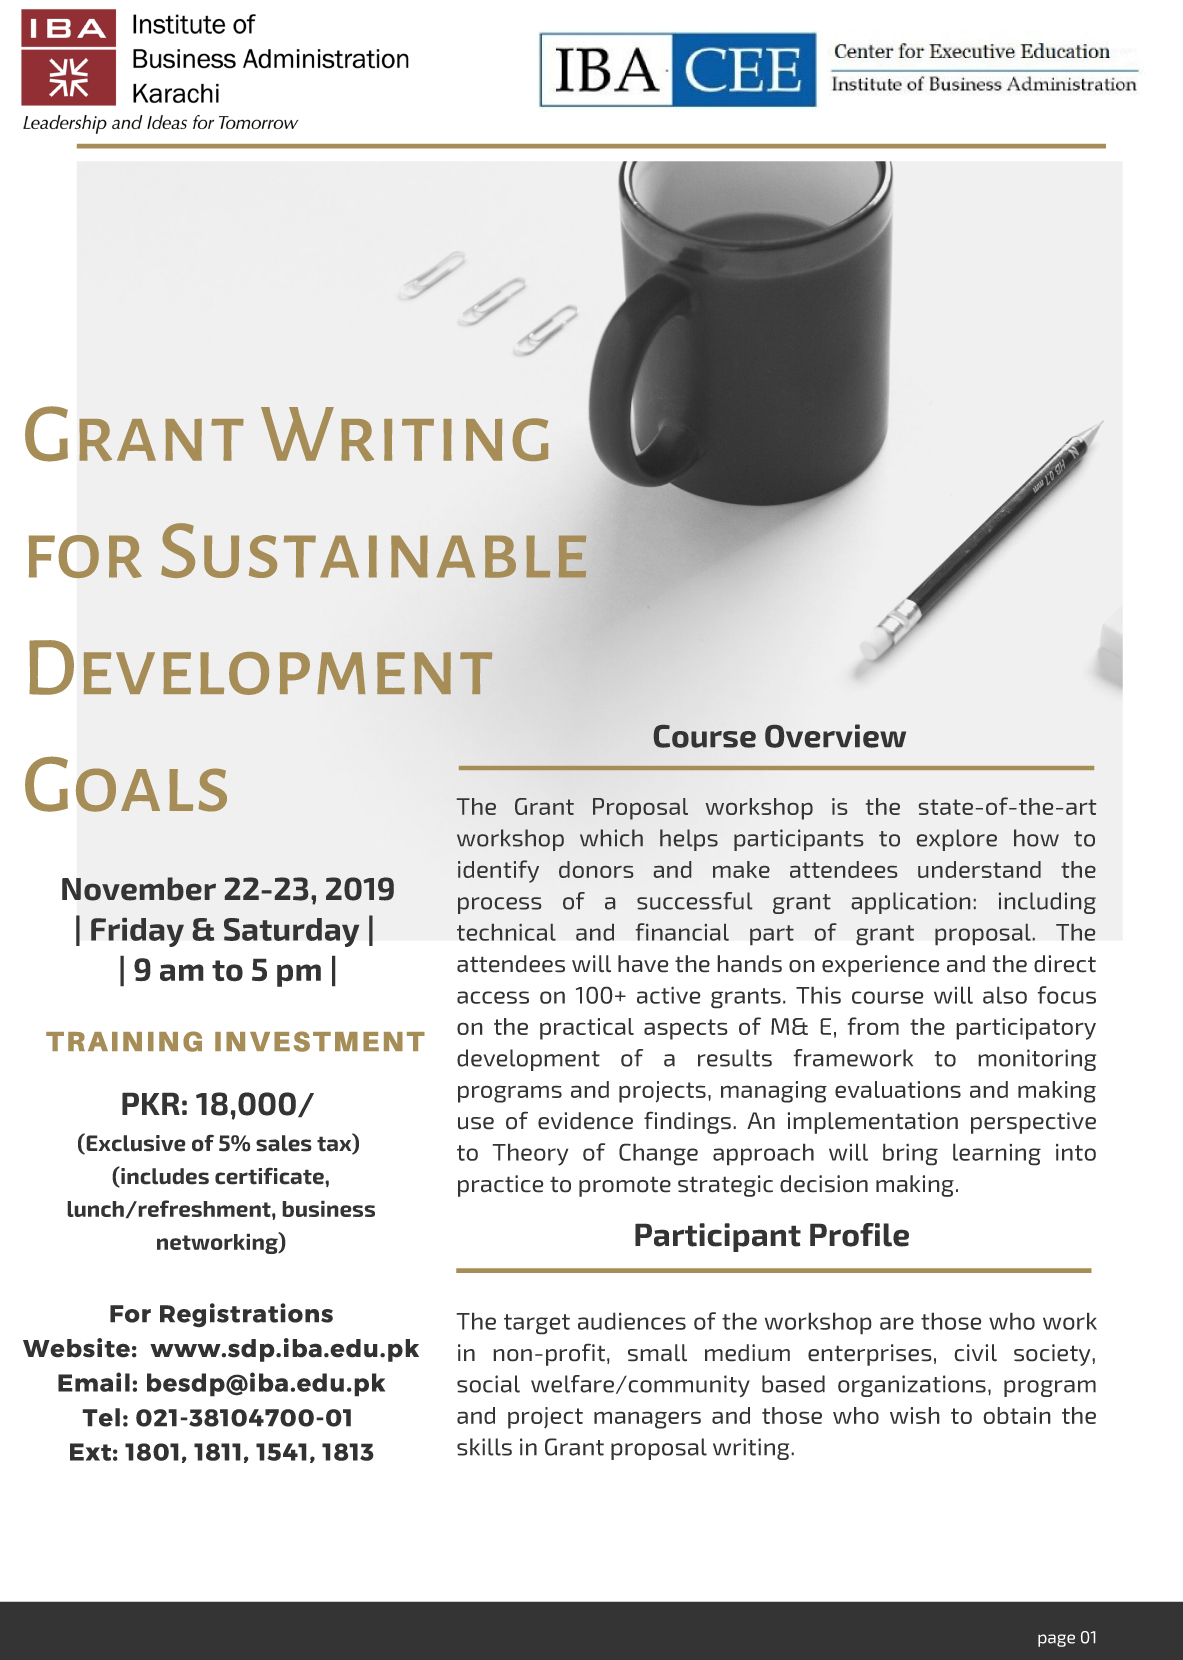 Grant Writing for Sustainable Development Goals